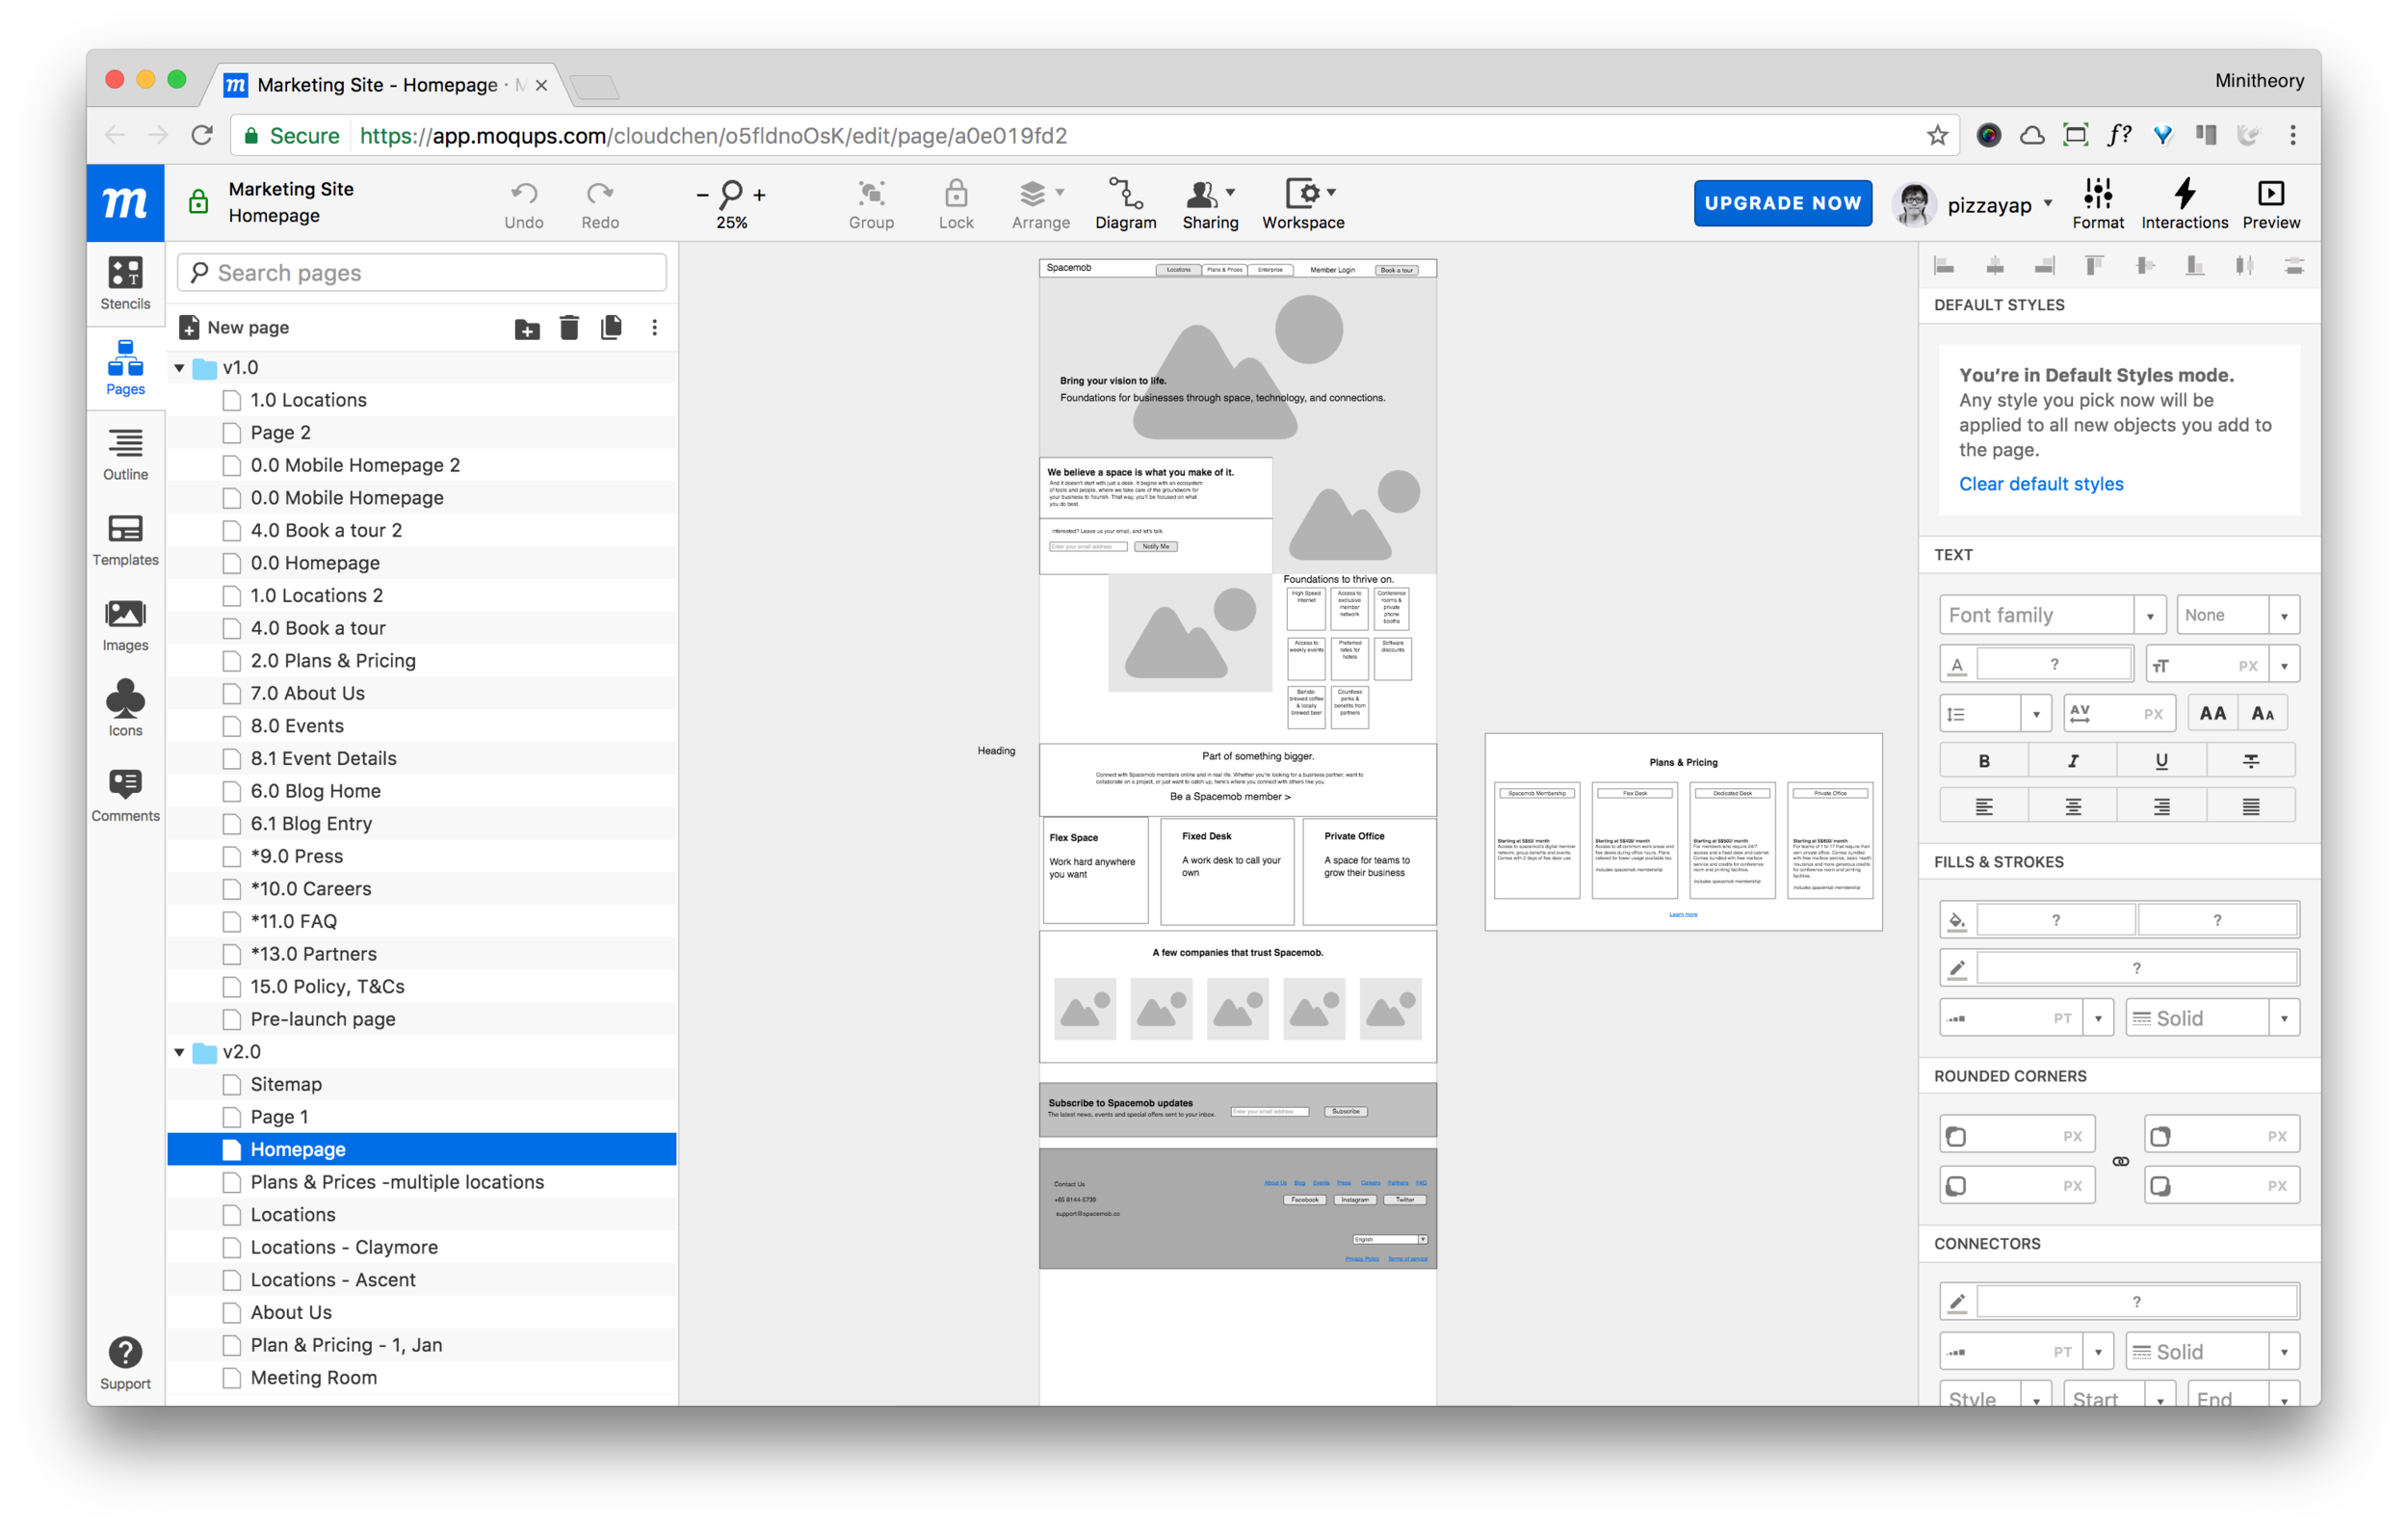 We use Moqups as the wireframing tools. It is a very good tool because we can collaborate with our designers and also client's product manager seamlessly.